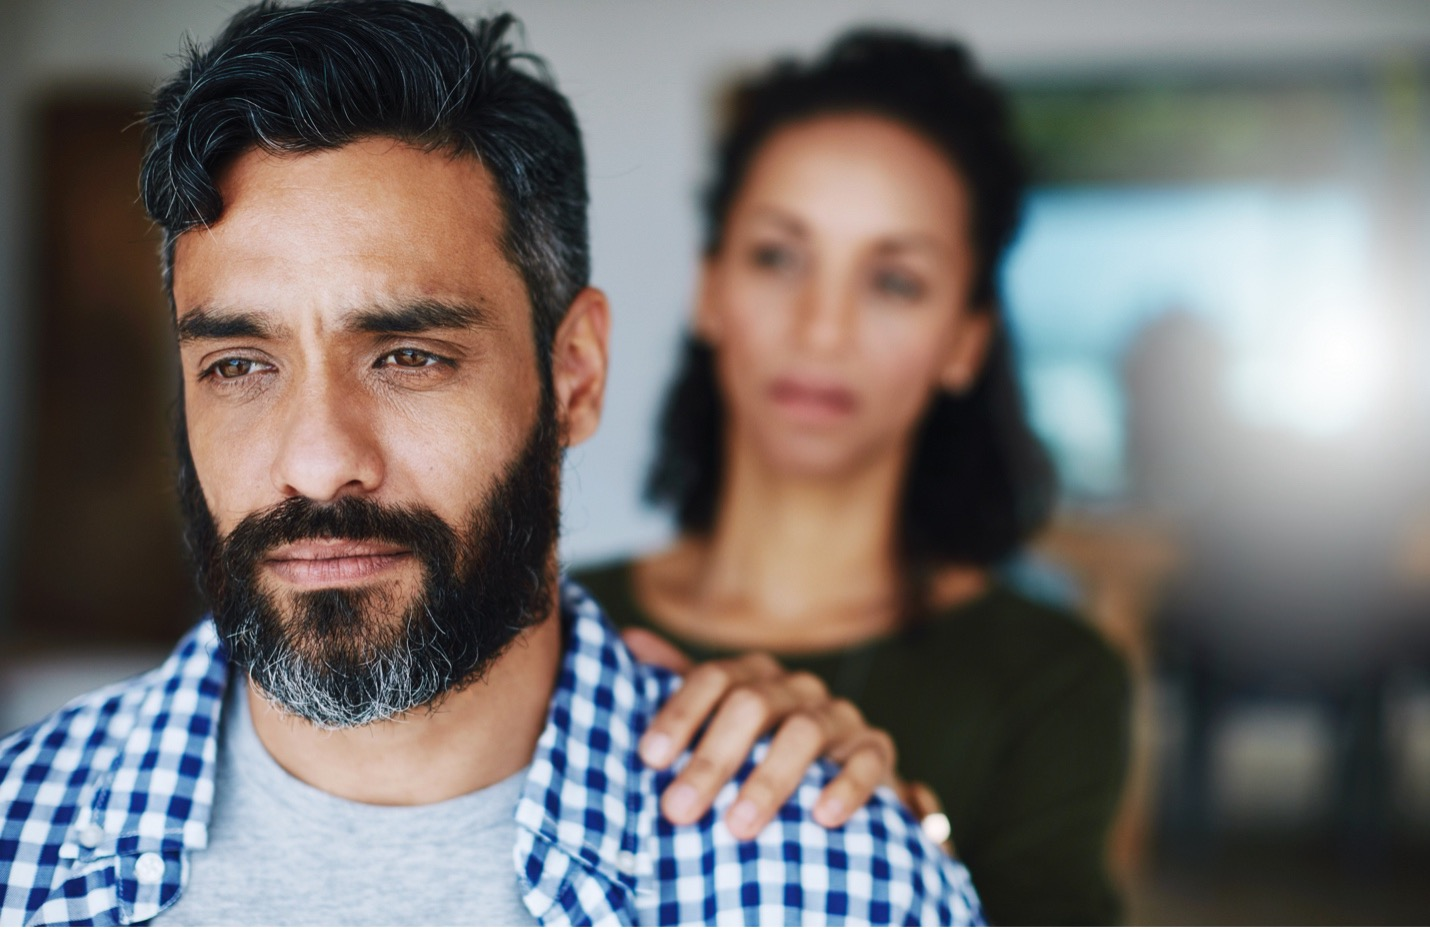 Man getting comfort from a women